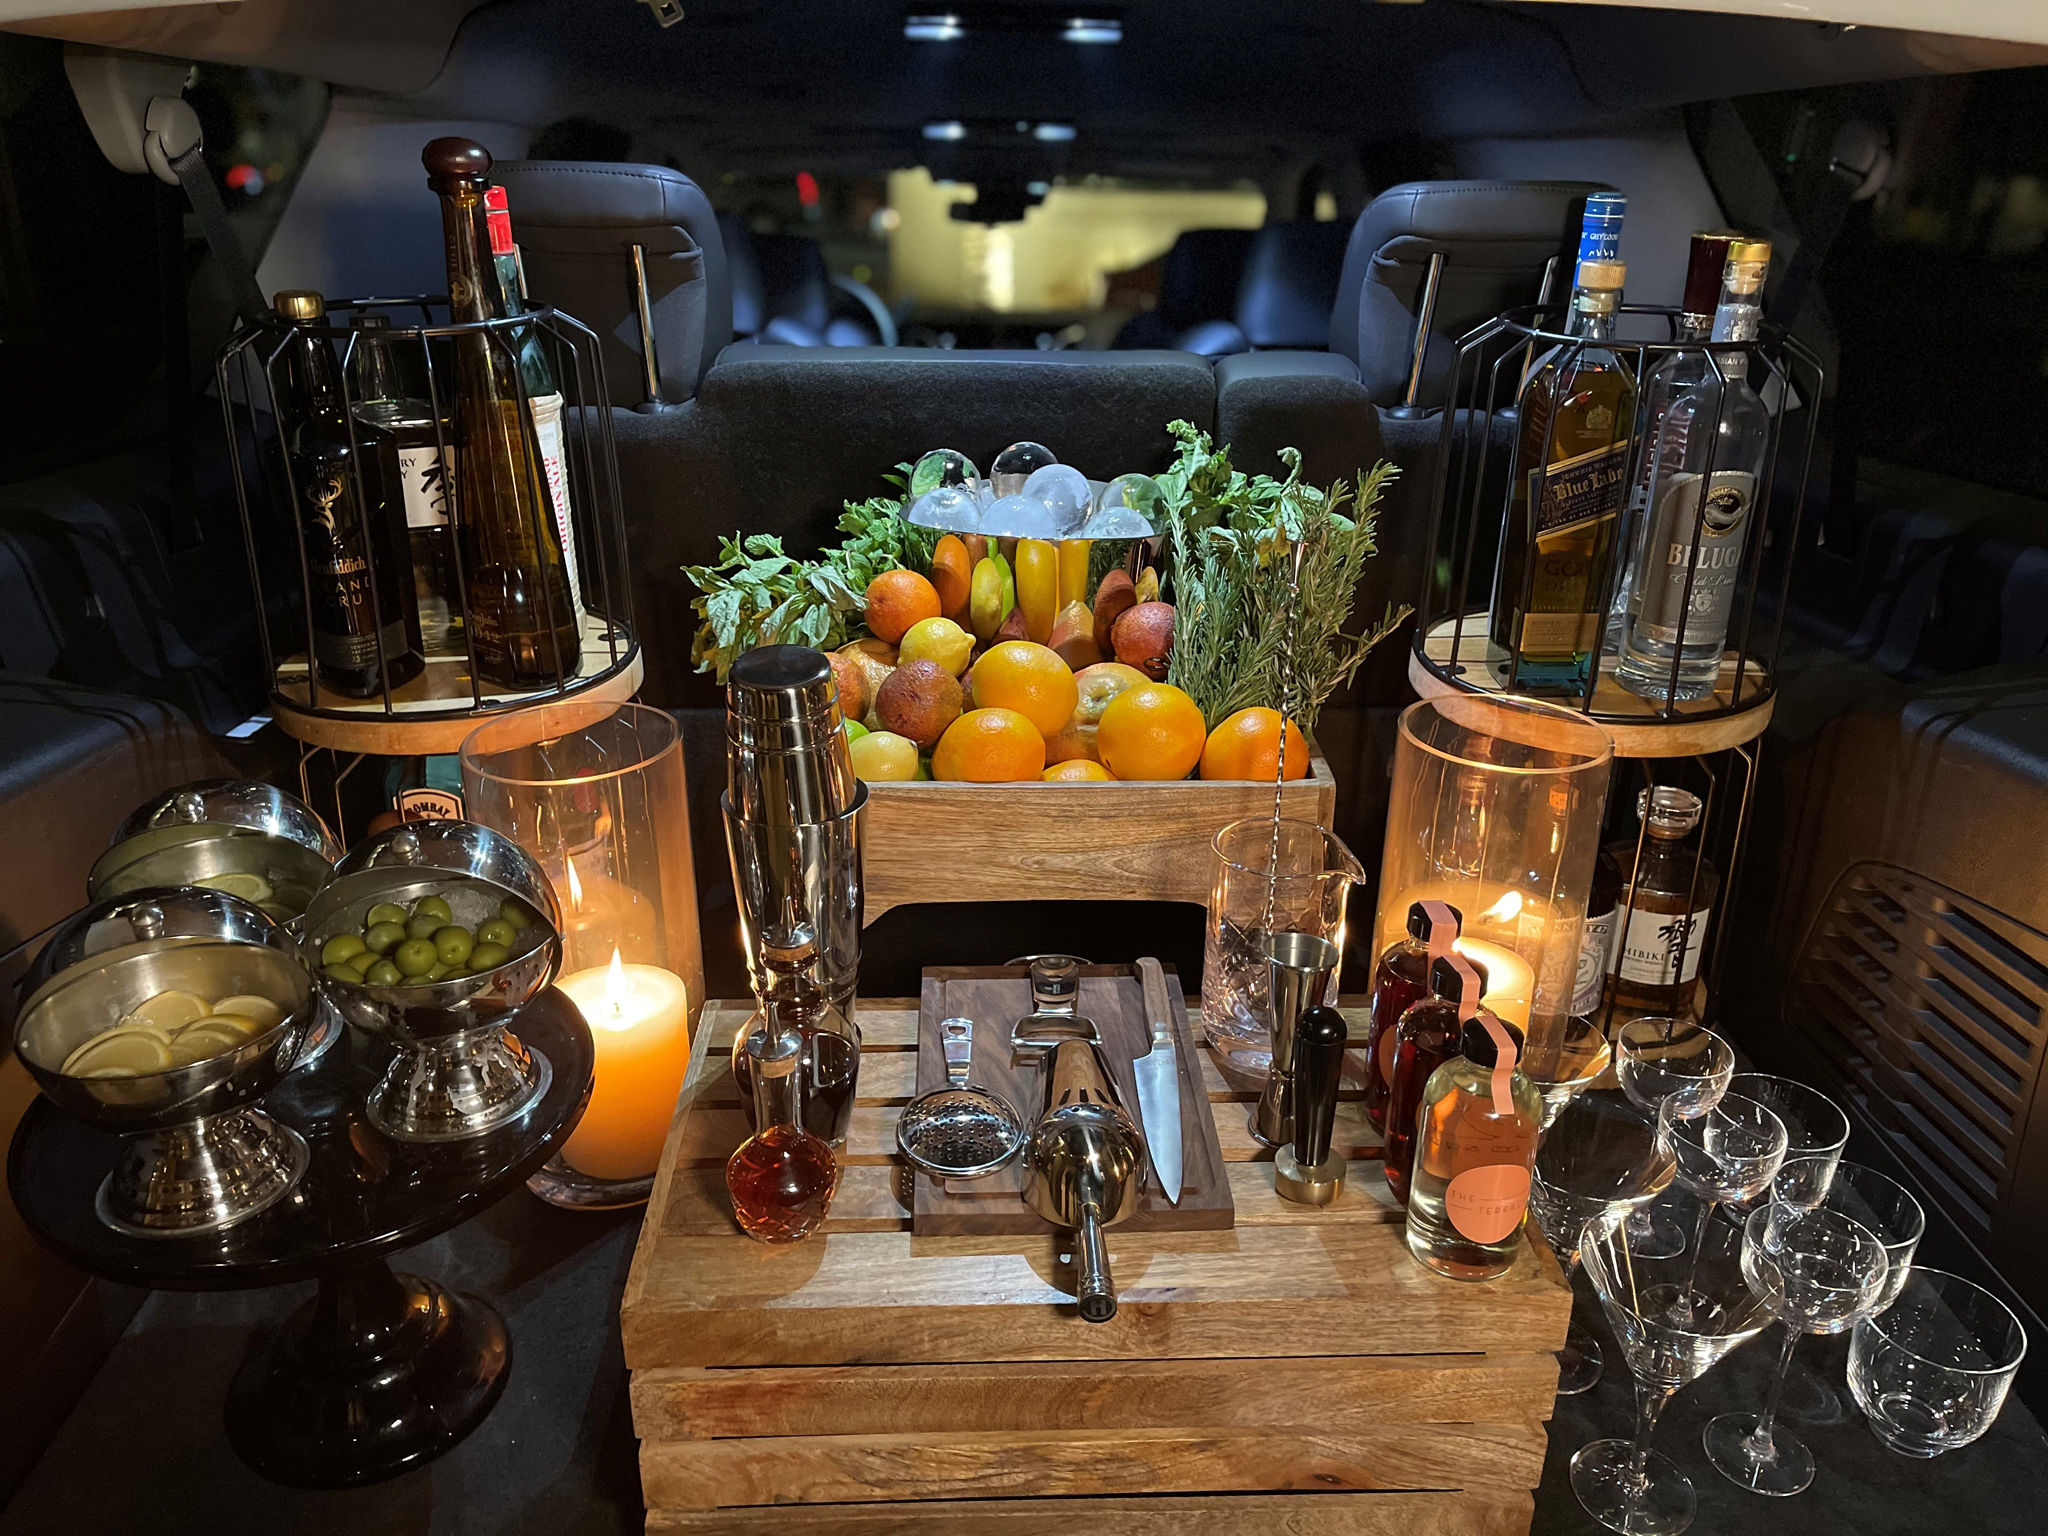 Need a stiff drink? This new mobile bar cart mixes cocktails at your door, distanced and masked.